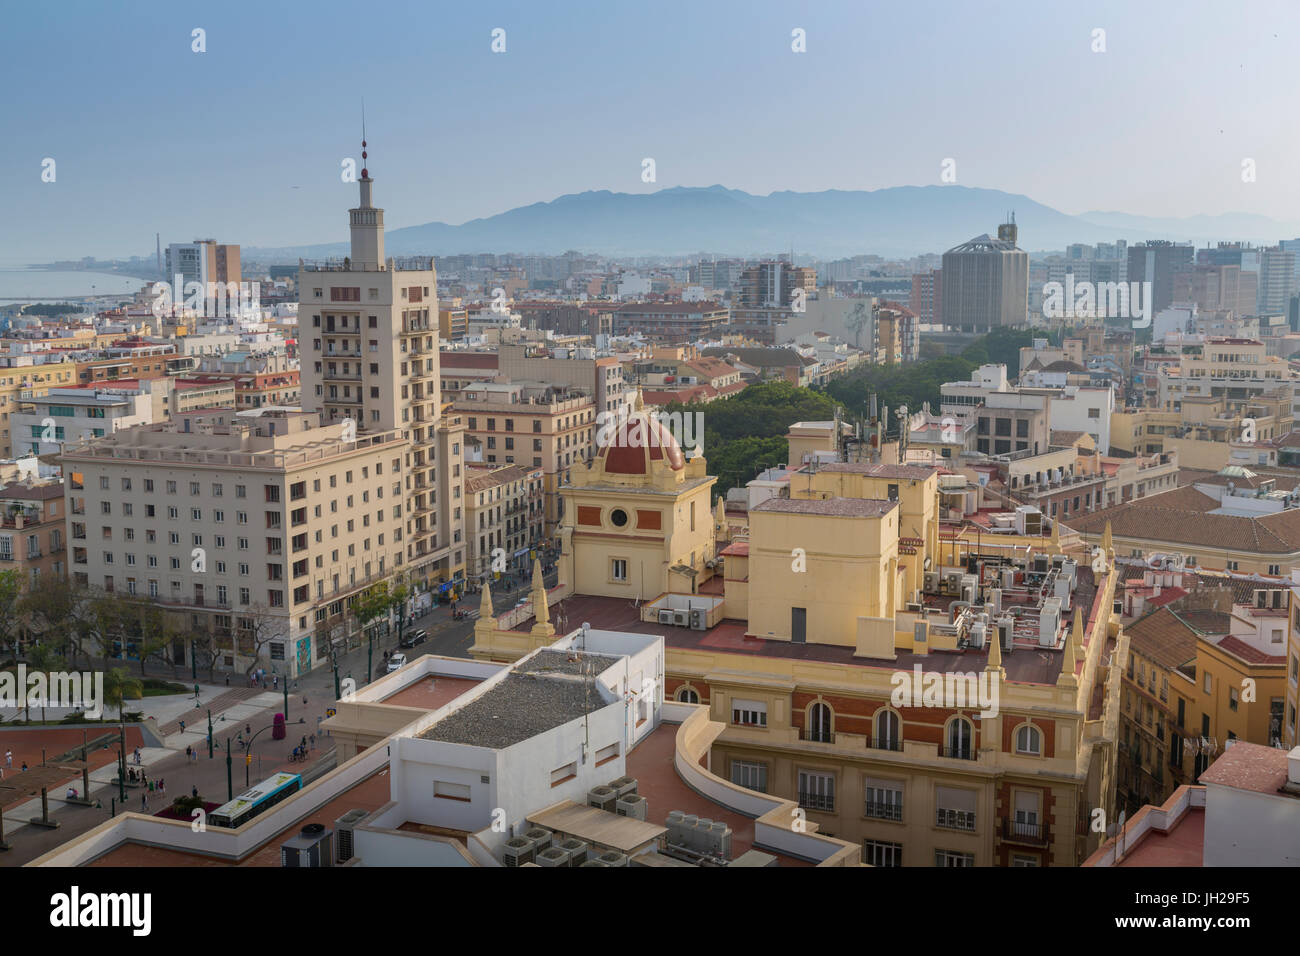 Elevated view of Alameda Principal, Malaga, Costa del Sol, Andalusia, Spain, Europe - Stock Image